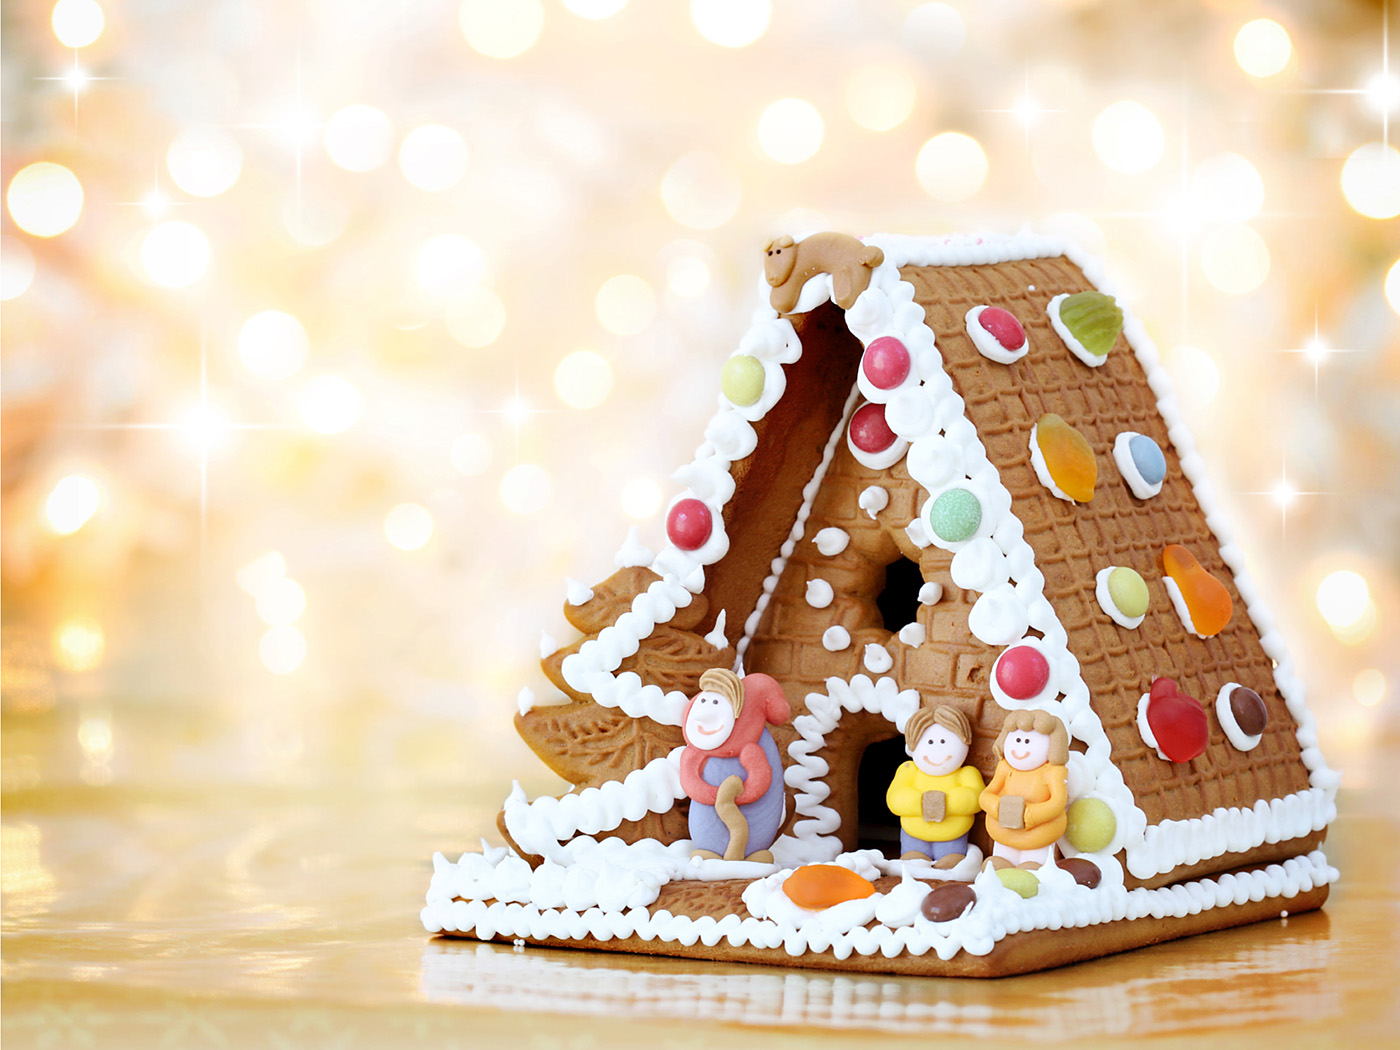 Christmas gingerbread house 49350